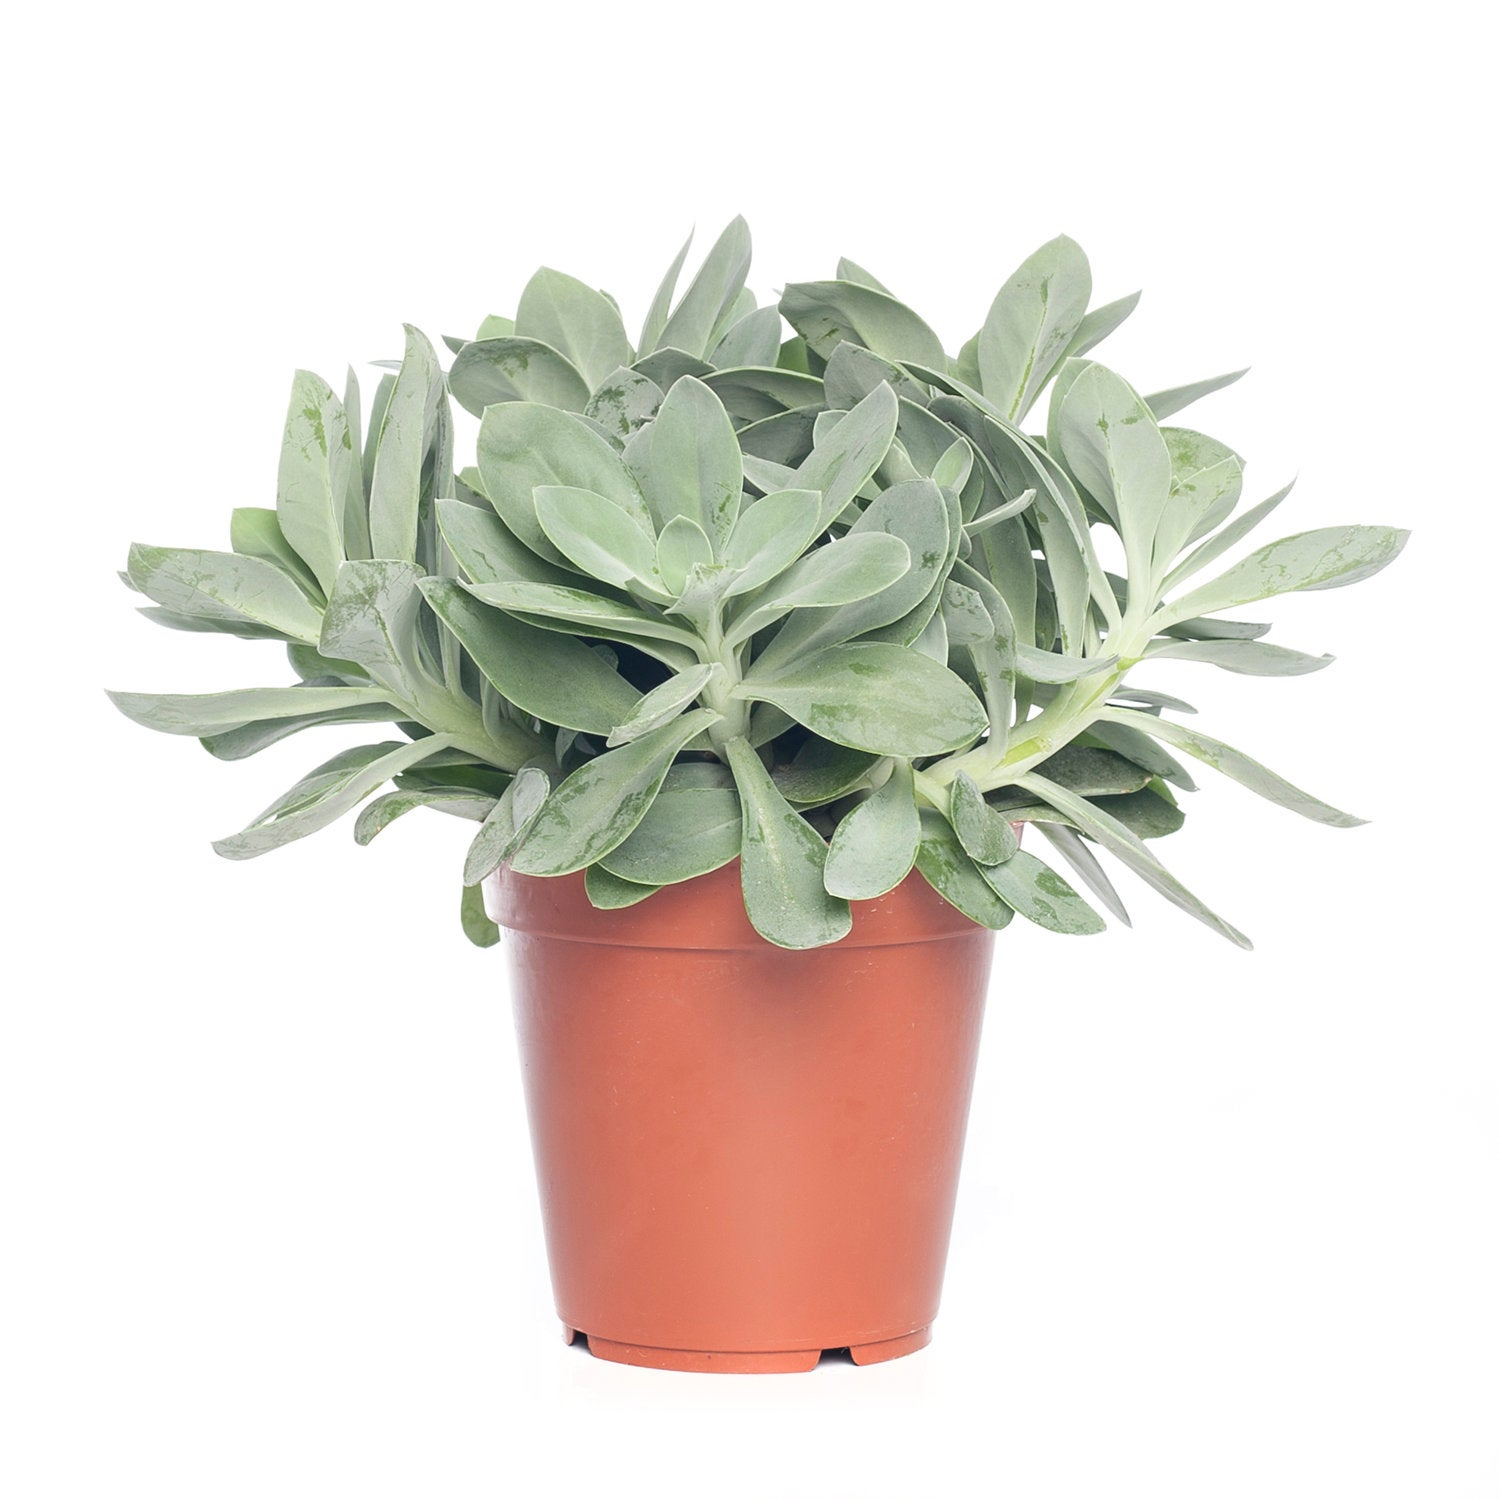 Kruiskruid (Senecio mountain fire 'Bright Bleu') D 15 H 25 cm